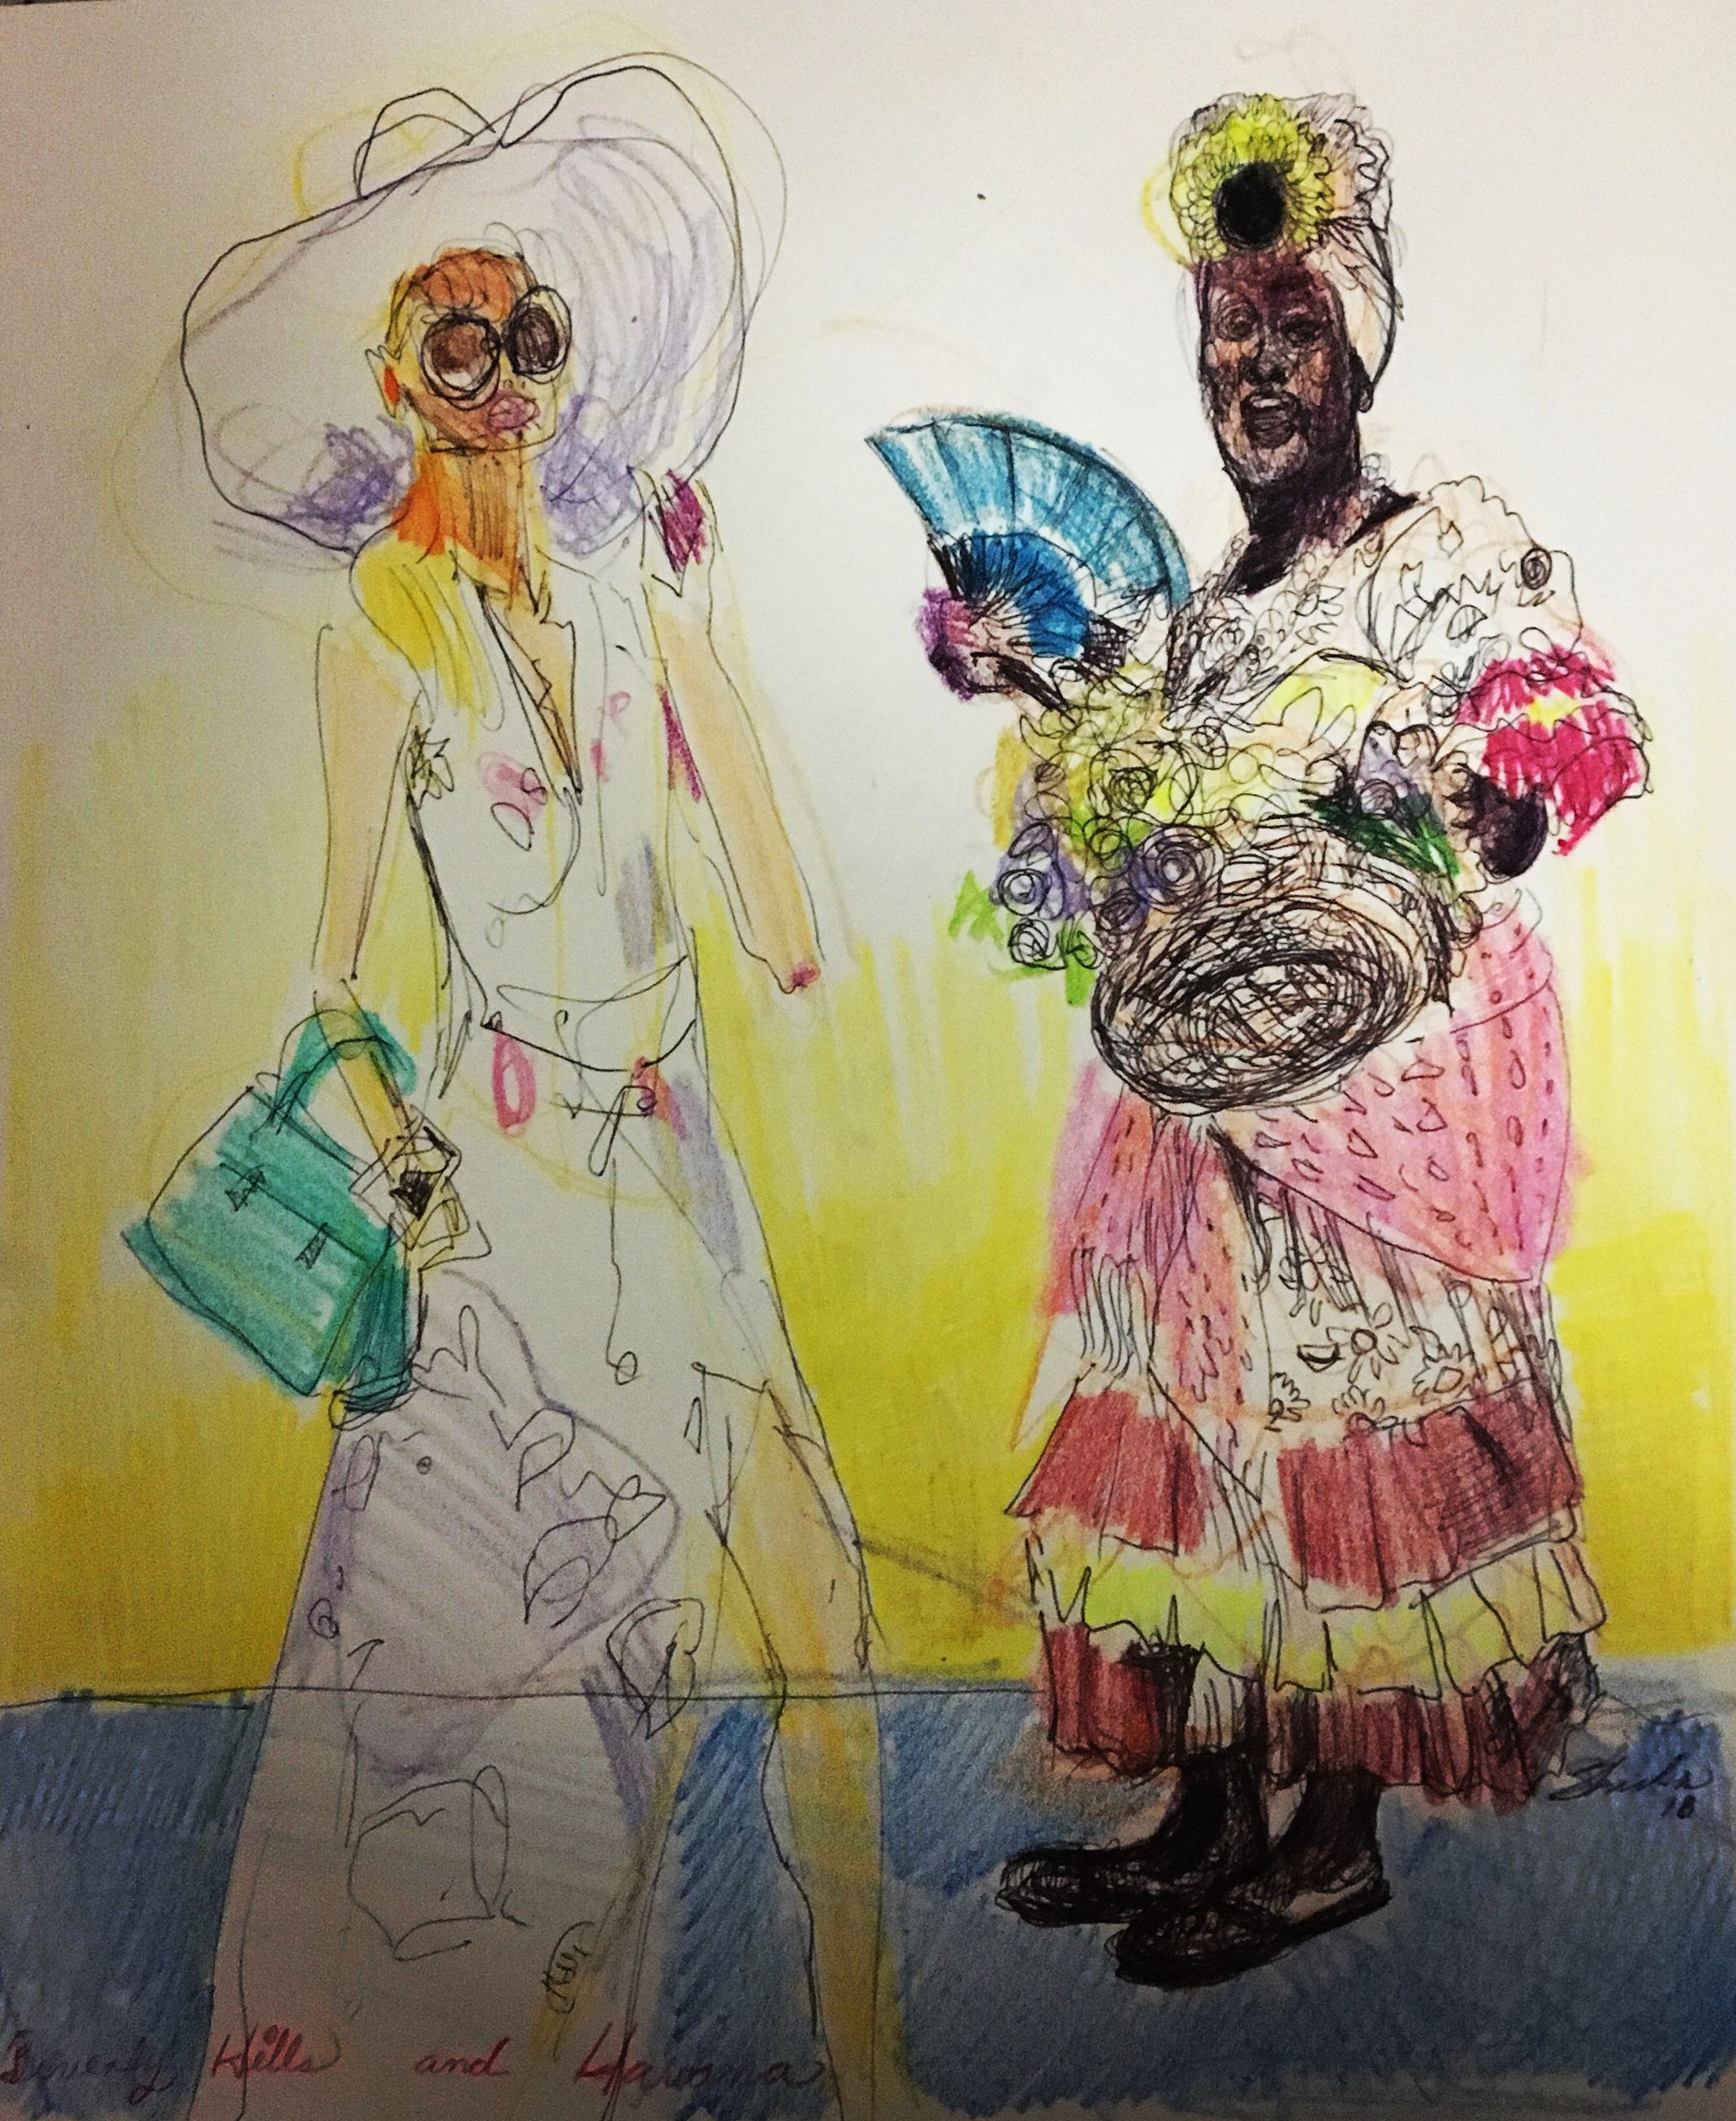 BEVERLY HILLS AND HAVANA, WATERCOLOR, ACRYLIC, INK, PEN, CRAYON AND COLOR PENCIL ON RECYCLED SKETCH